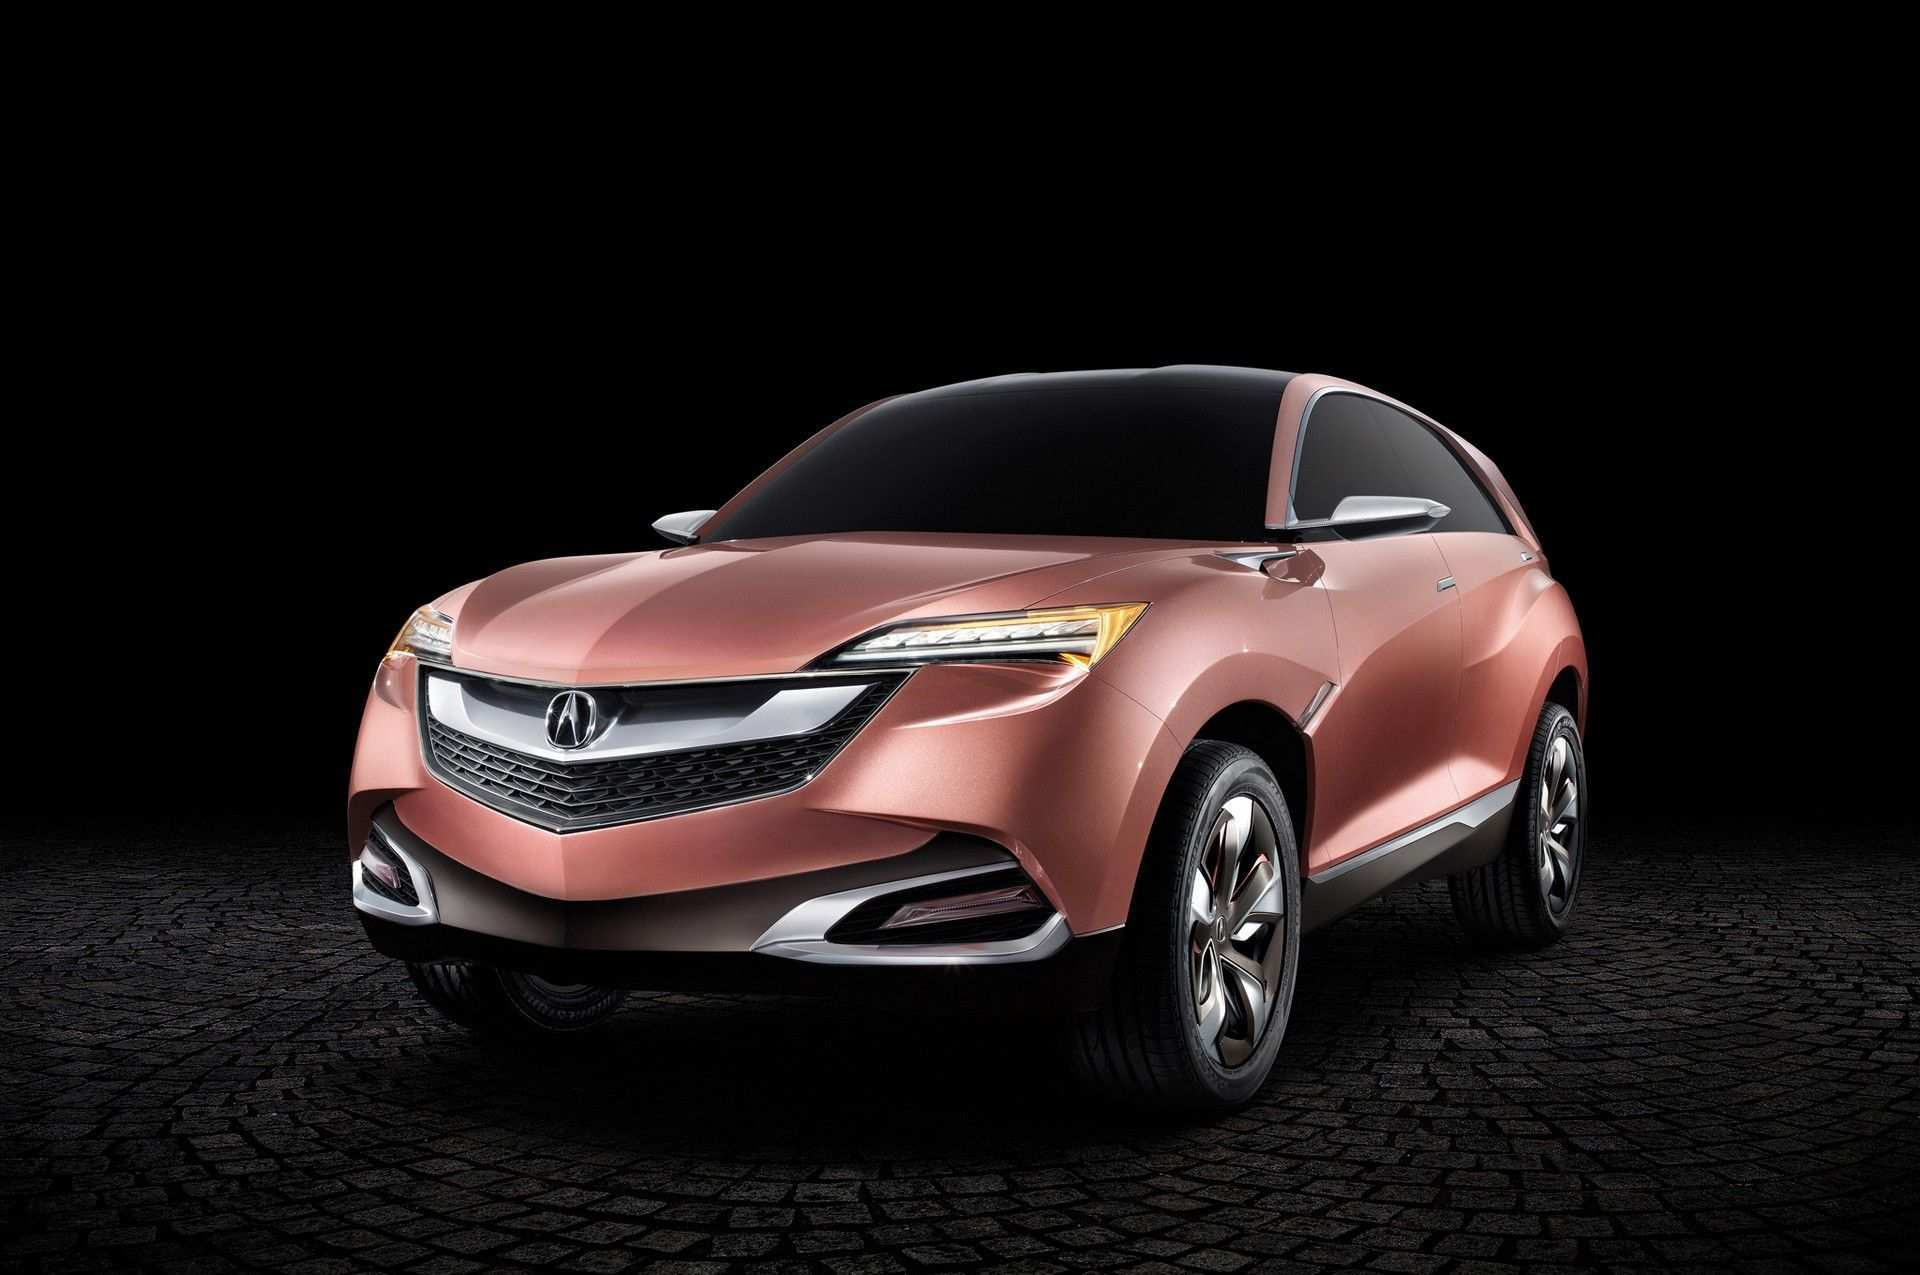 89 Concept of Acura Rdx 2020 Release Date Model with Acura Rdx 2020 Release Date